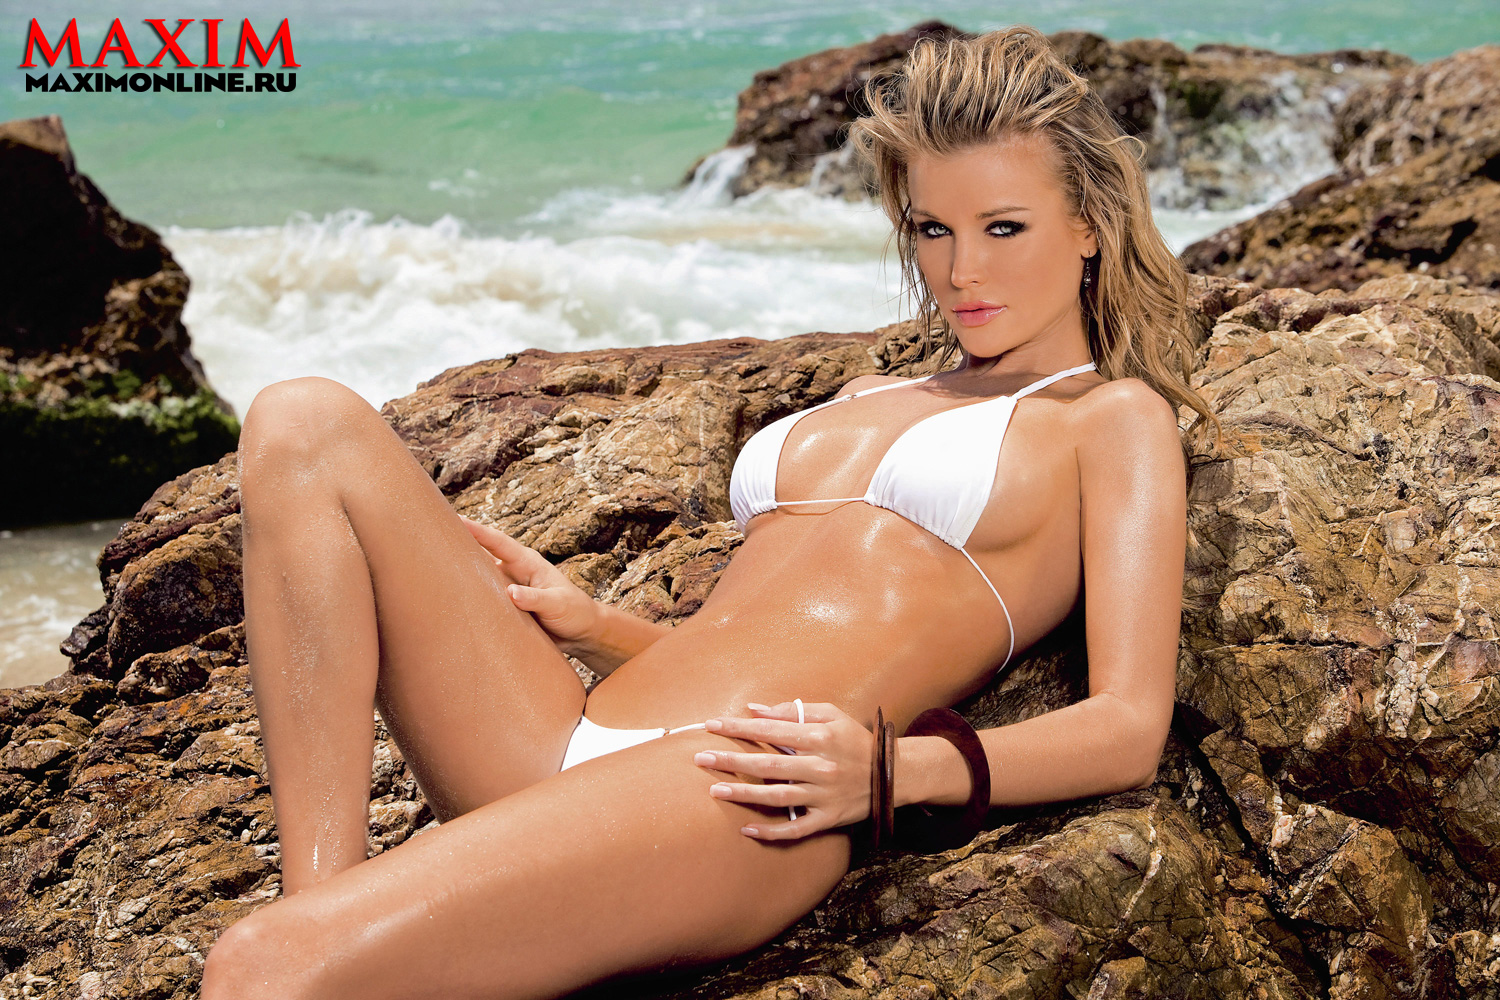 Be. can Joanna krupa maxim magazine